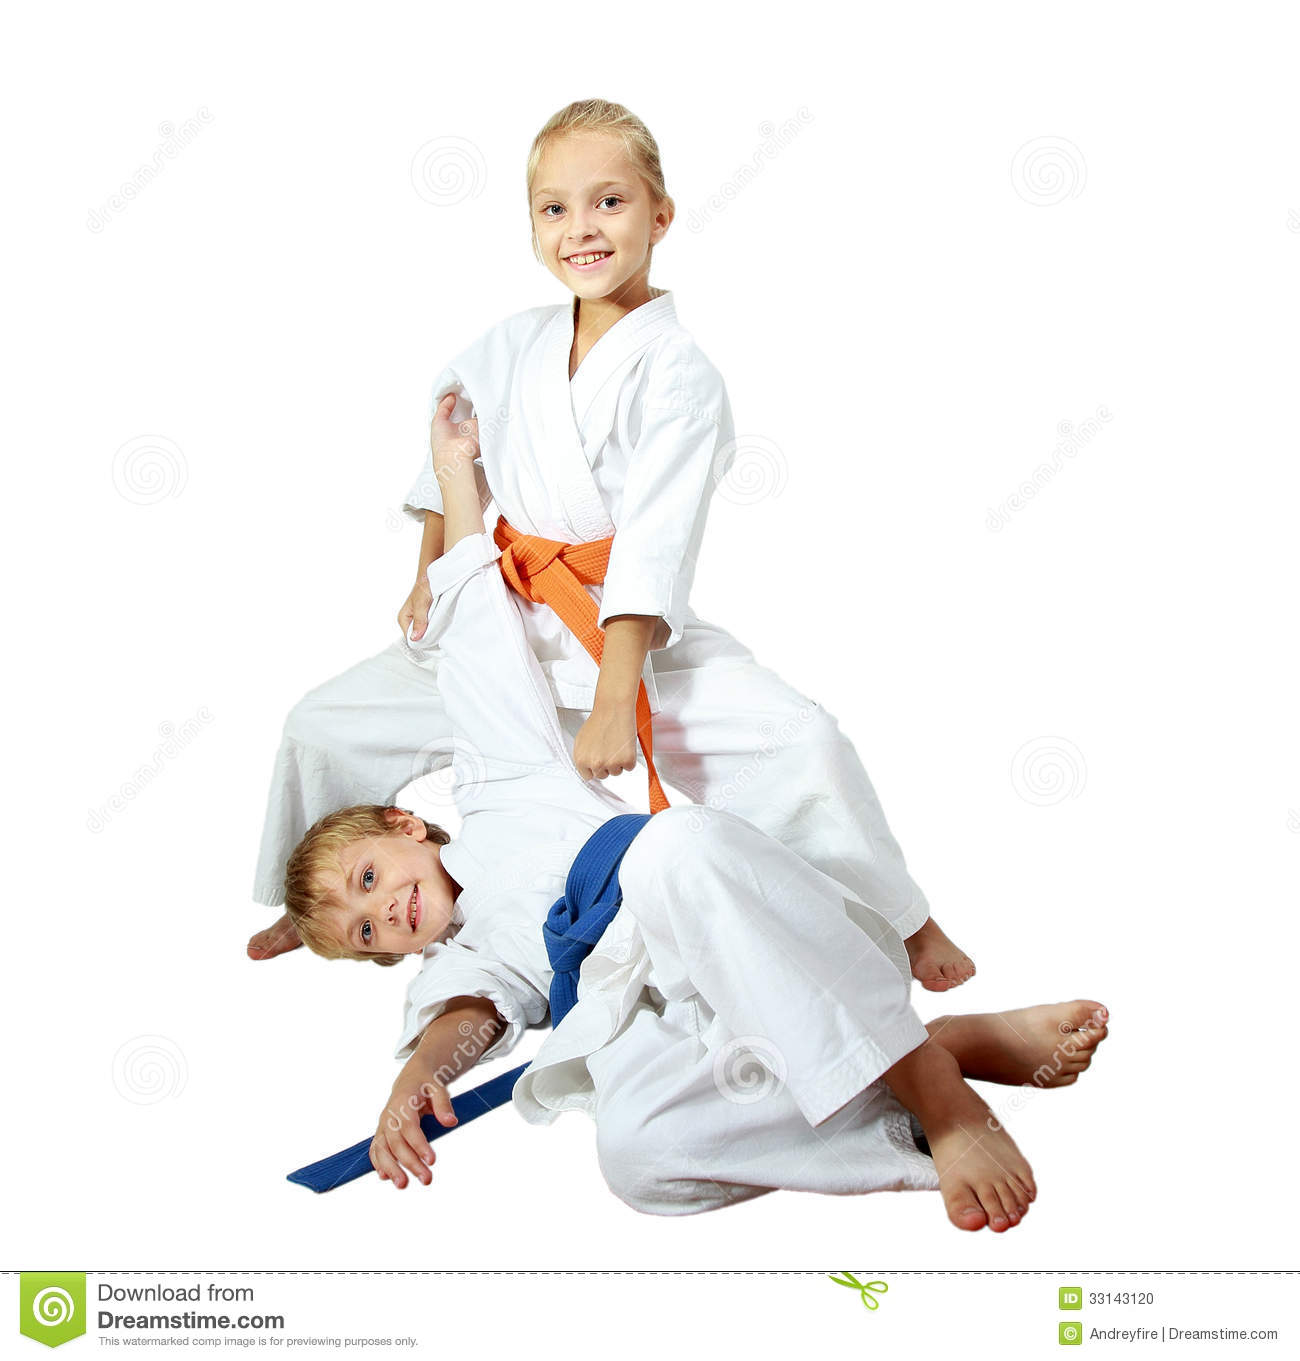 Http Www Dreamstime Com Stock Photo Cheerful Kids Athletes Kimono Doing Throws Image33143120